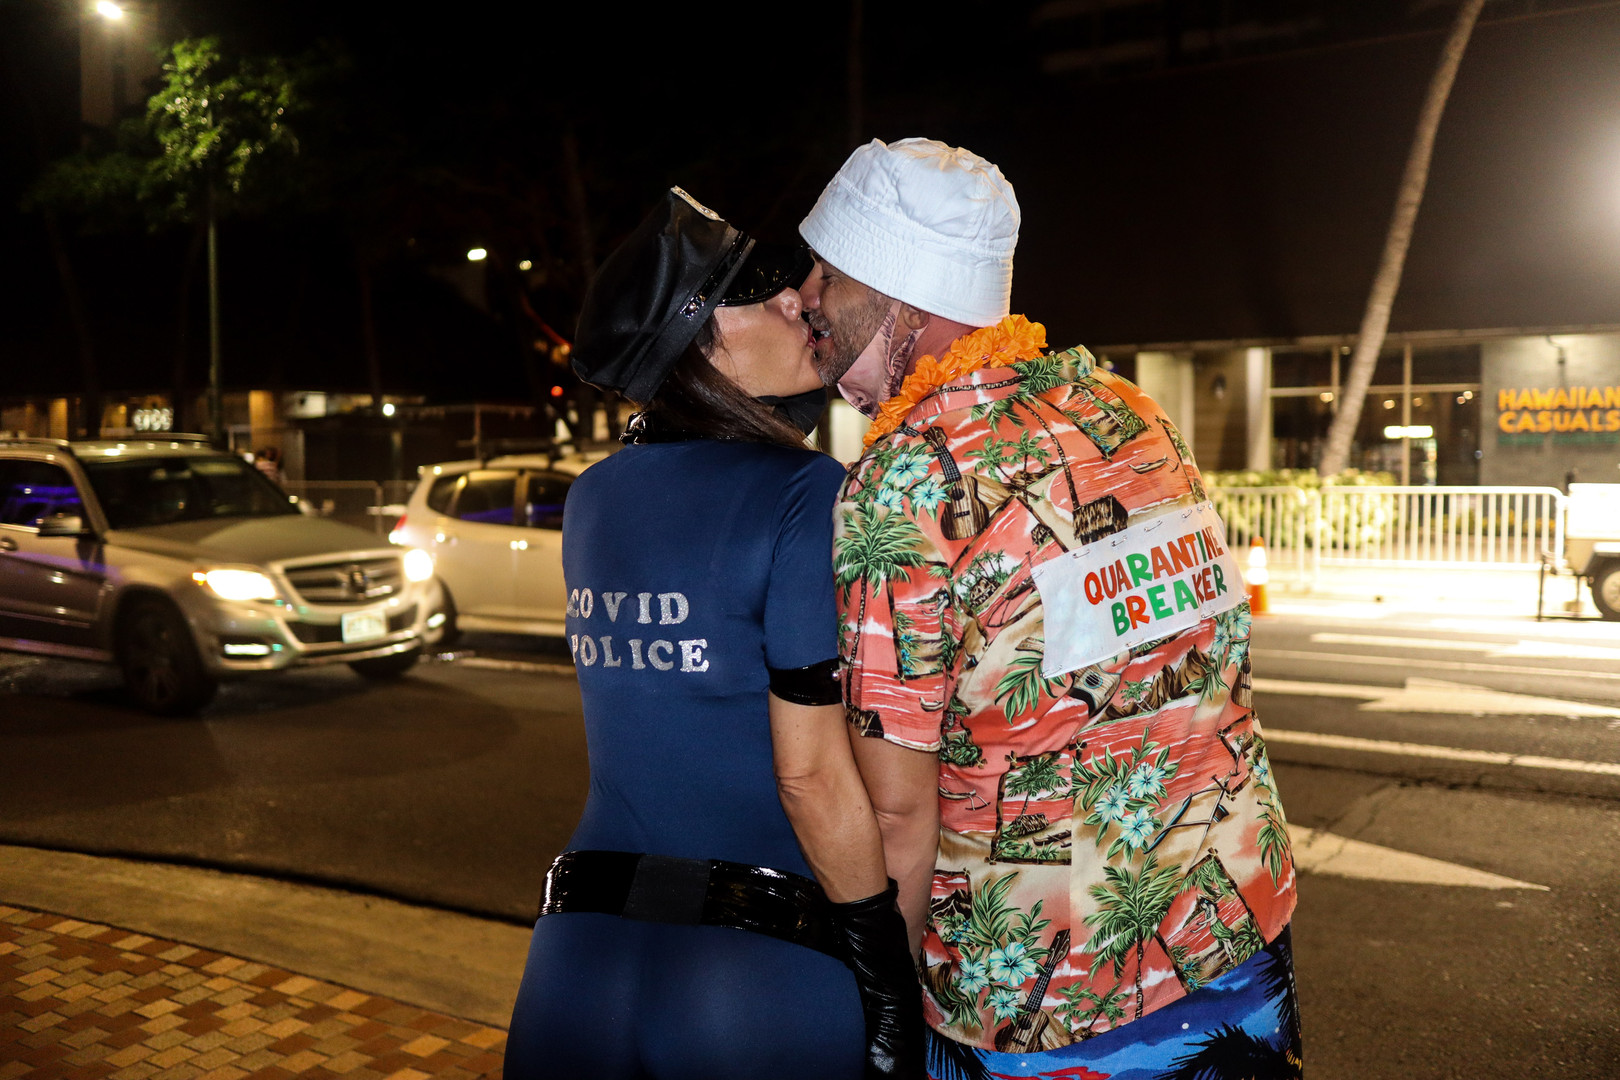 "Visitors dressed as ""Covid Police"" and Quarantine Breaker"" on the Waikiki street on Halloween night, October 31, 2020. Every year on Halloween, Waikīkī sees a record number of people flooding the streets in the wildest of costumes migrating from one bar to another. It is thought to be the busiest night of the year. Not surprisingly, Waikīkī saw its fewest number of people compared to past Halloween nights. Although people were seen wearing face masks, some continued to gather in large groups. Honolulu police officers patrolled Waikīkī, encouraging residents and visitors to follow COVID-19 restrictions by enforcing facial coverings and dispersing large groups of people. Sidewalks and parts of beach entrances were barricaded on Kalakaua Avenue to prevent street parking and gathering."